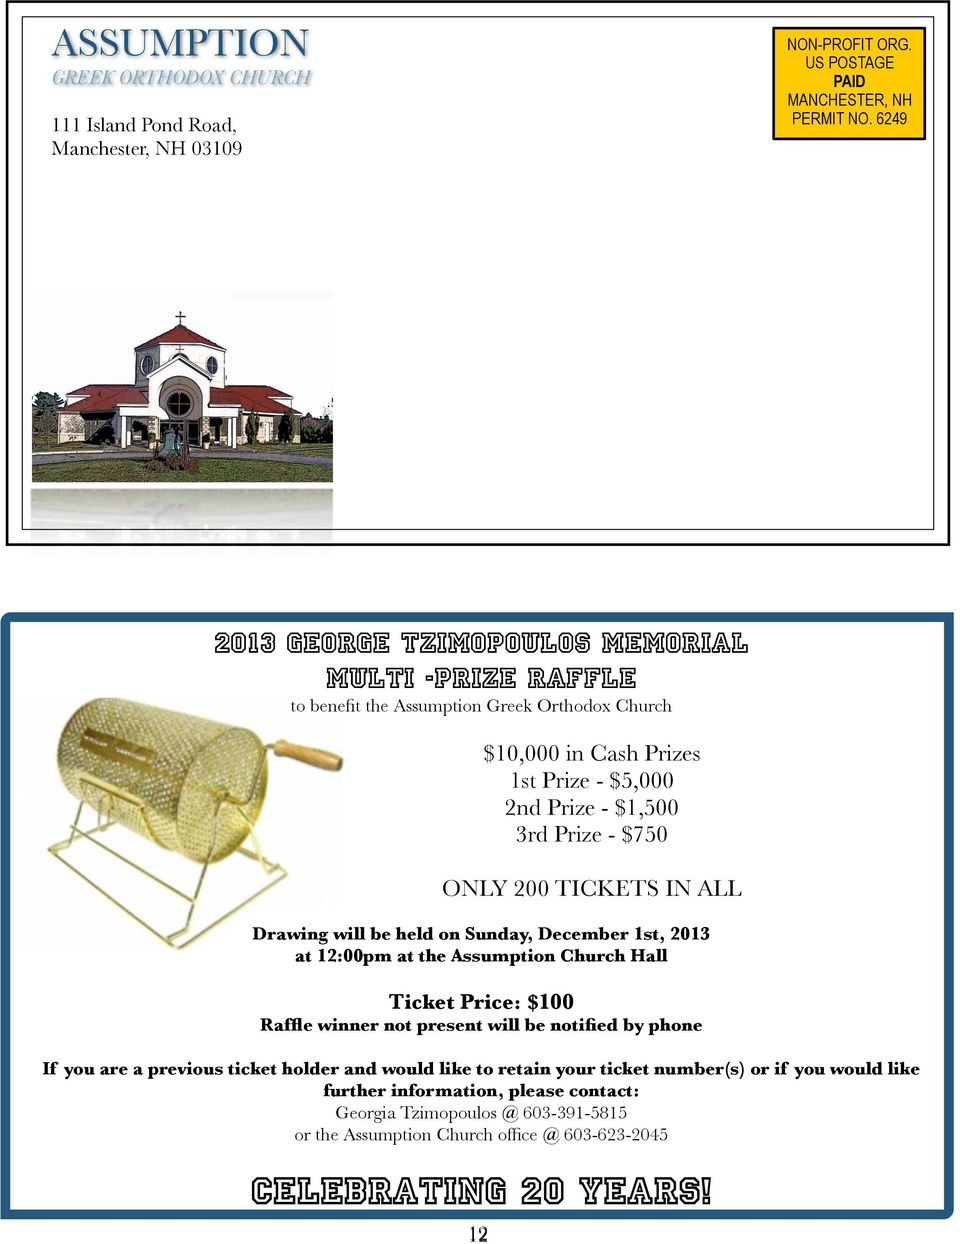 "12/-(/%3)2) $/%0'()""+)4567) 2013 GEORGE TZIMOPOULOS MEMORIAL MULTI -PRIZE RAFFLE to benefit the Assumption Greek Orthodox Church $10,000 in Cash Prizes 1st Prize - $5,000 2nd Prize - $1,500 3rd Prize"